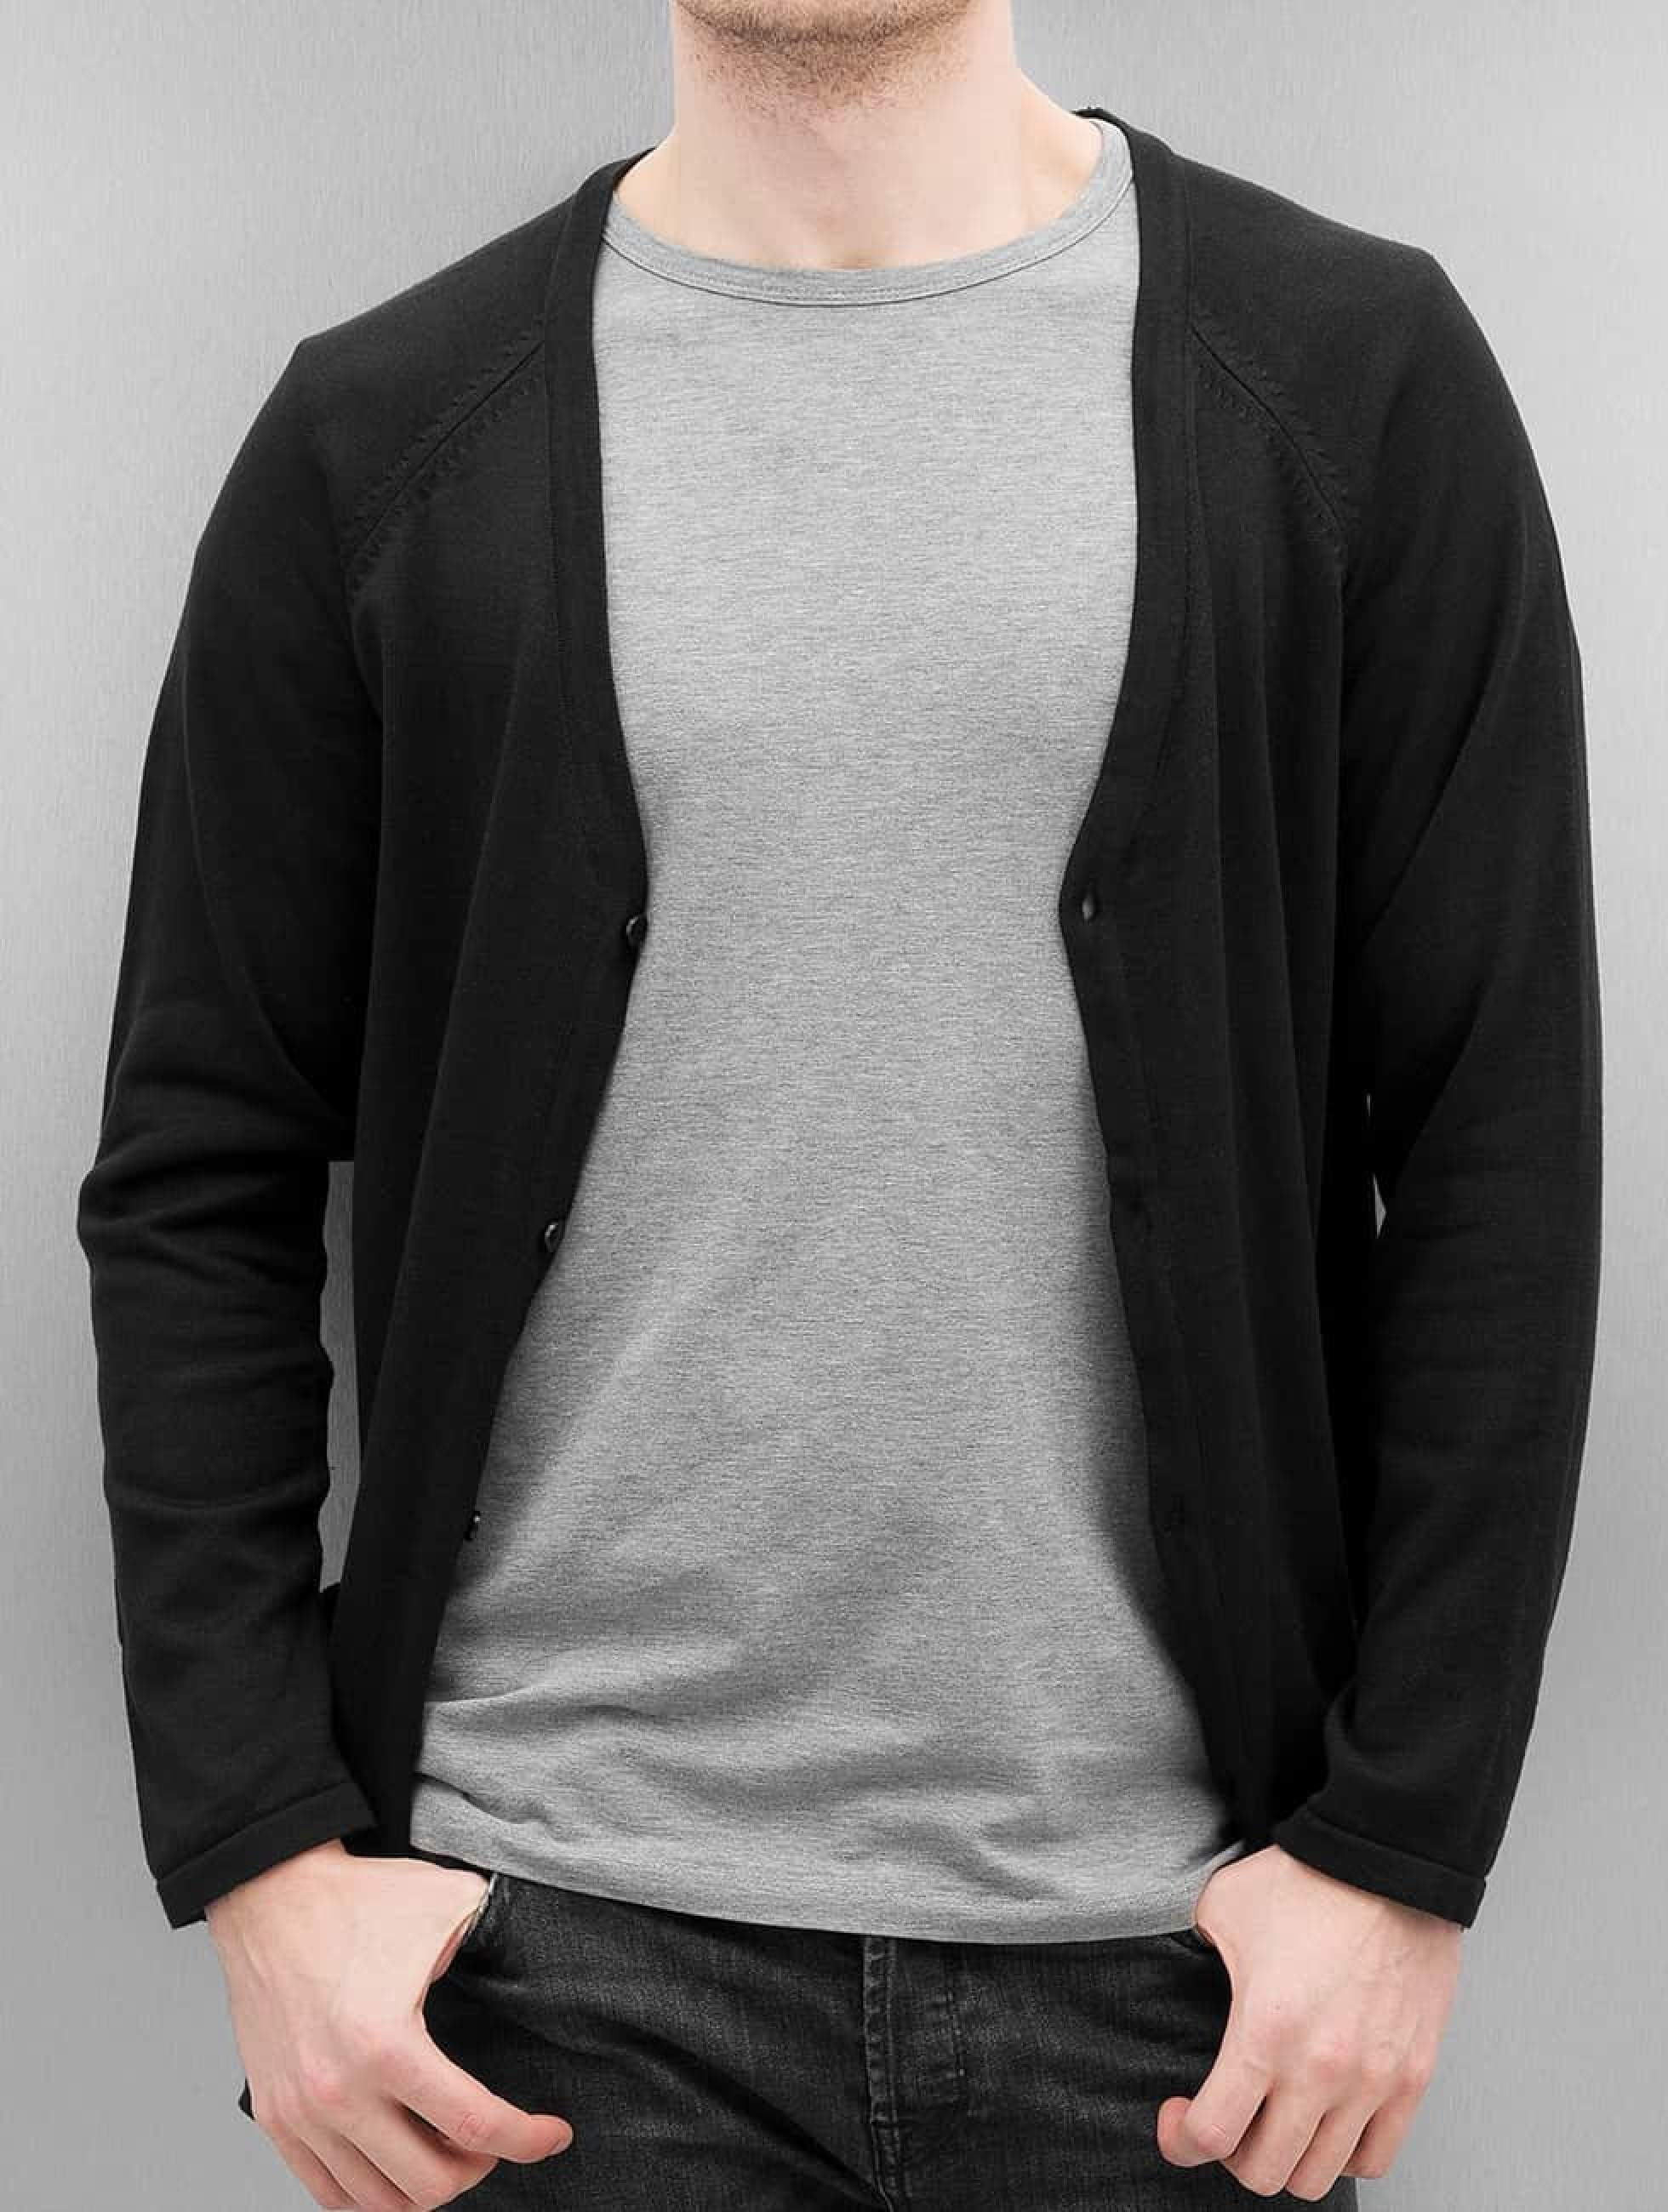 Cazzy Clang / Cardigan Basic in black L